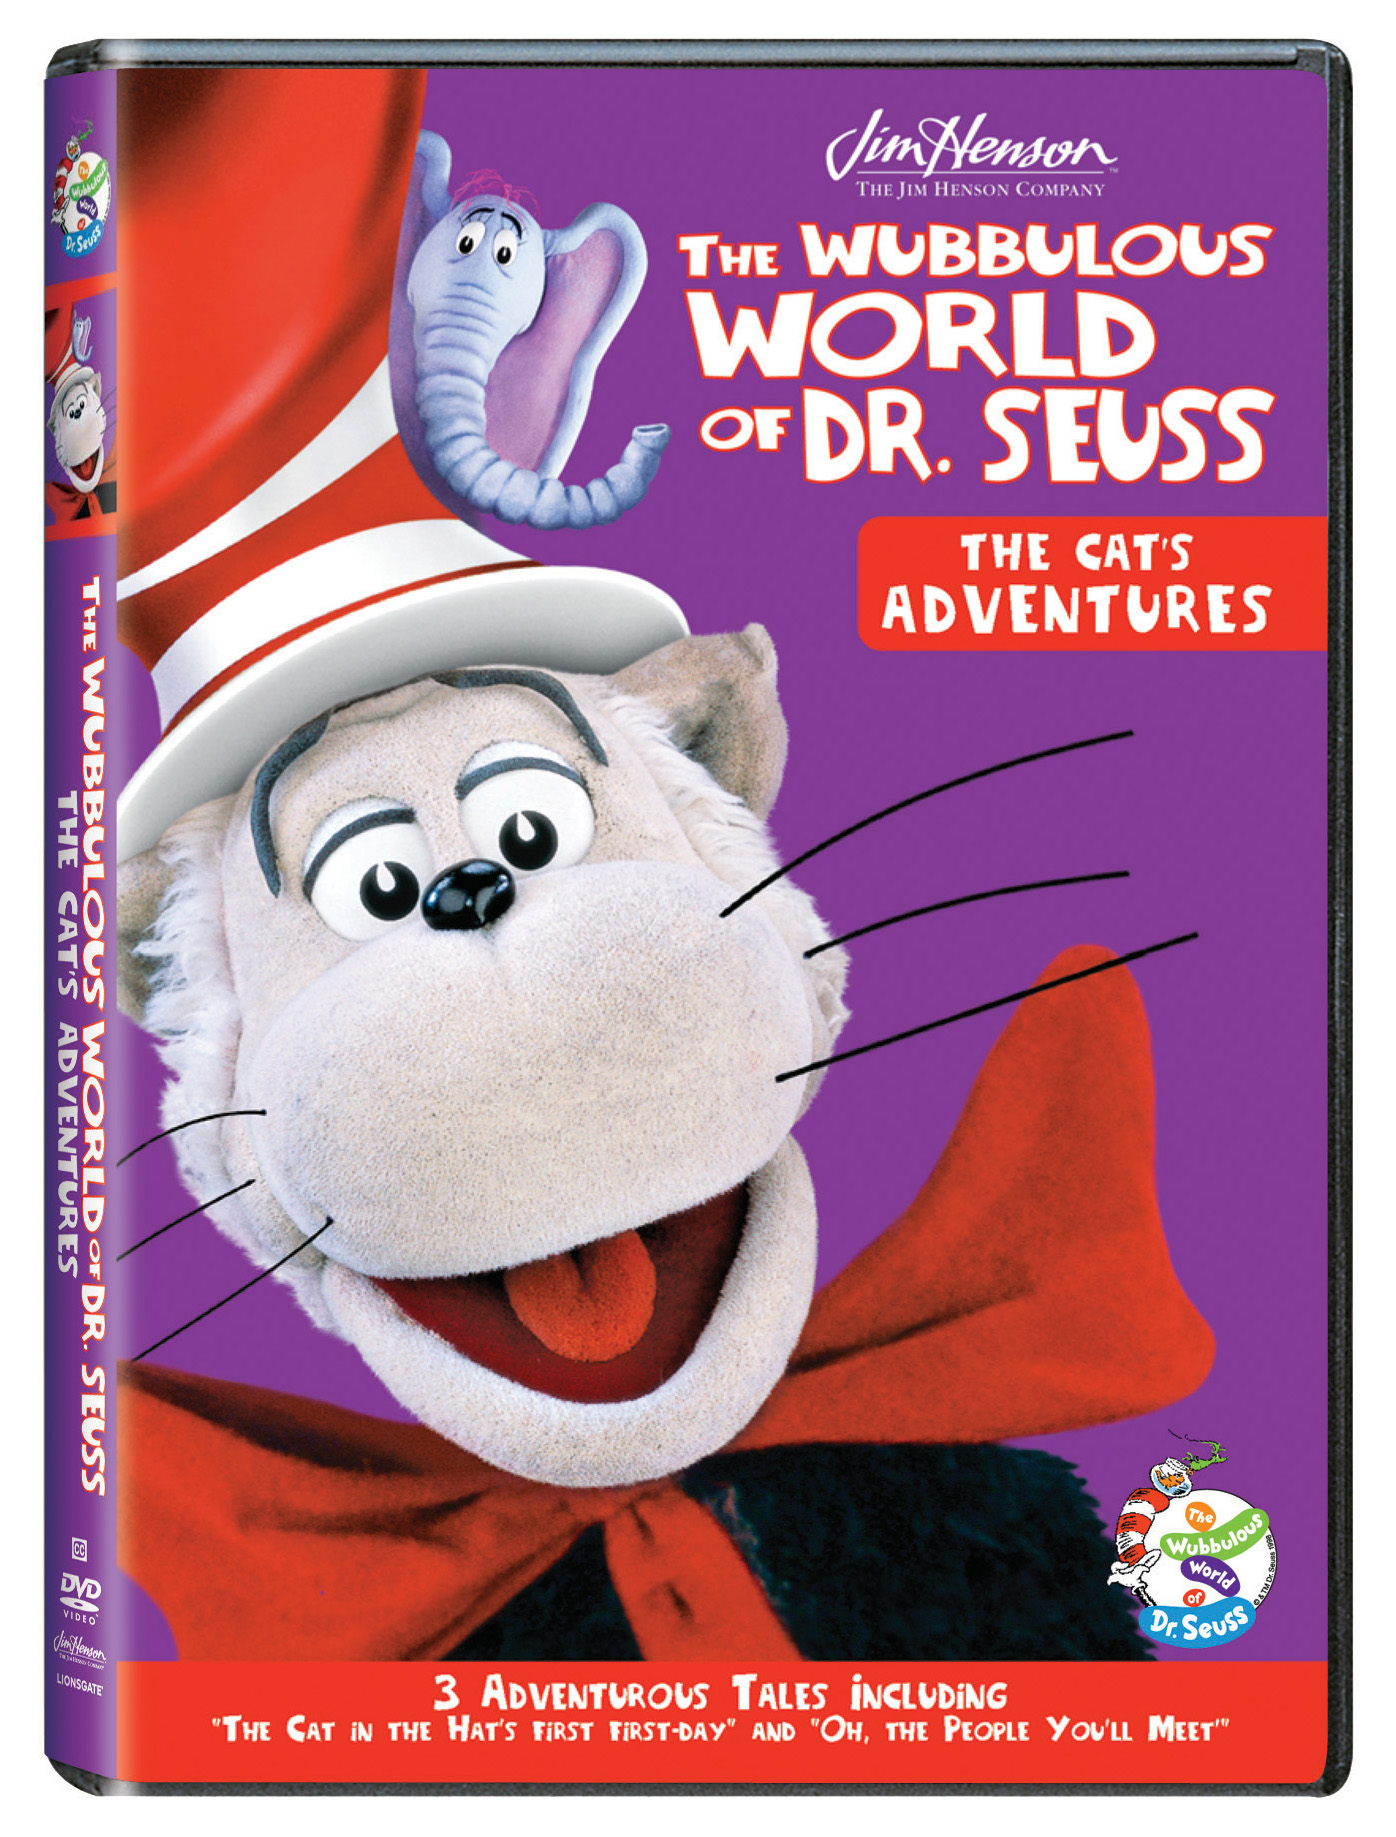 The Wubbulous World of Dr. Seuss - The Cat's Adventures movie